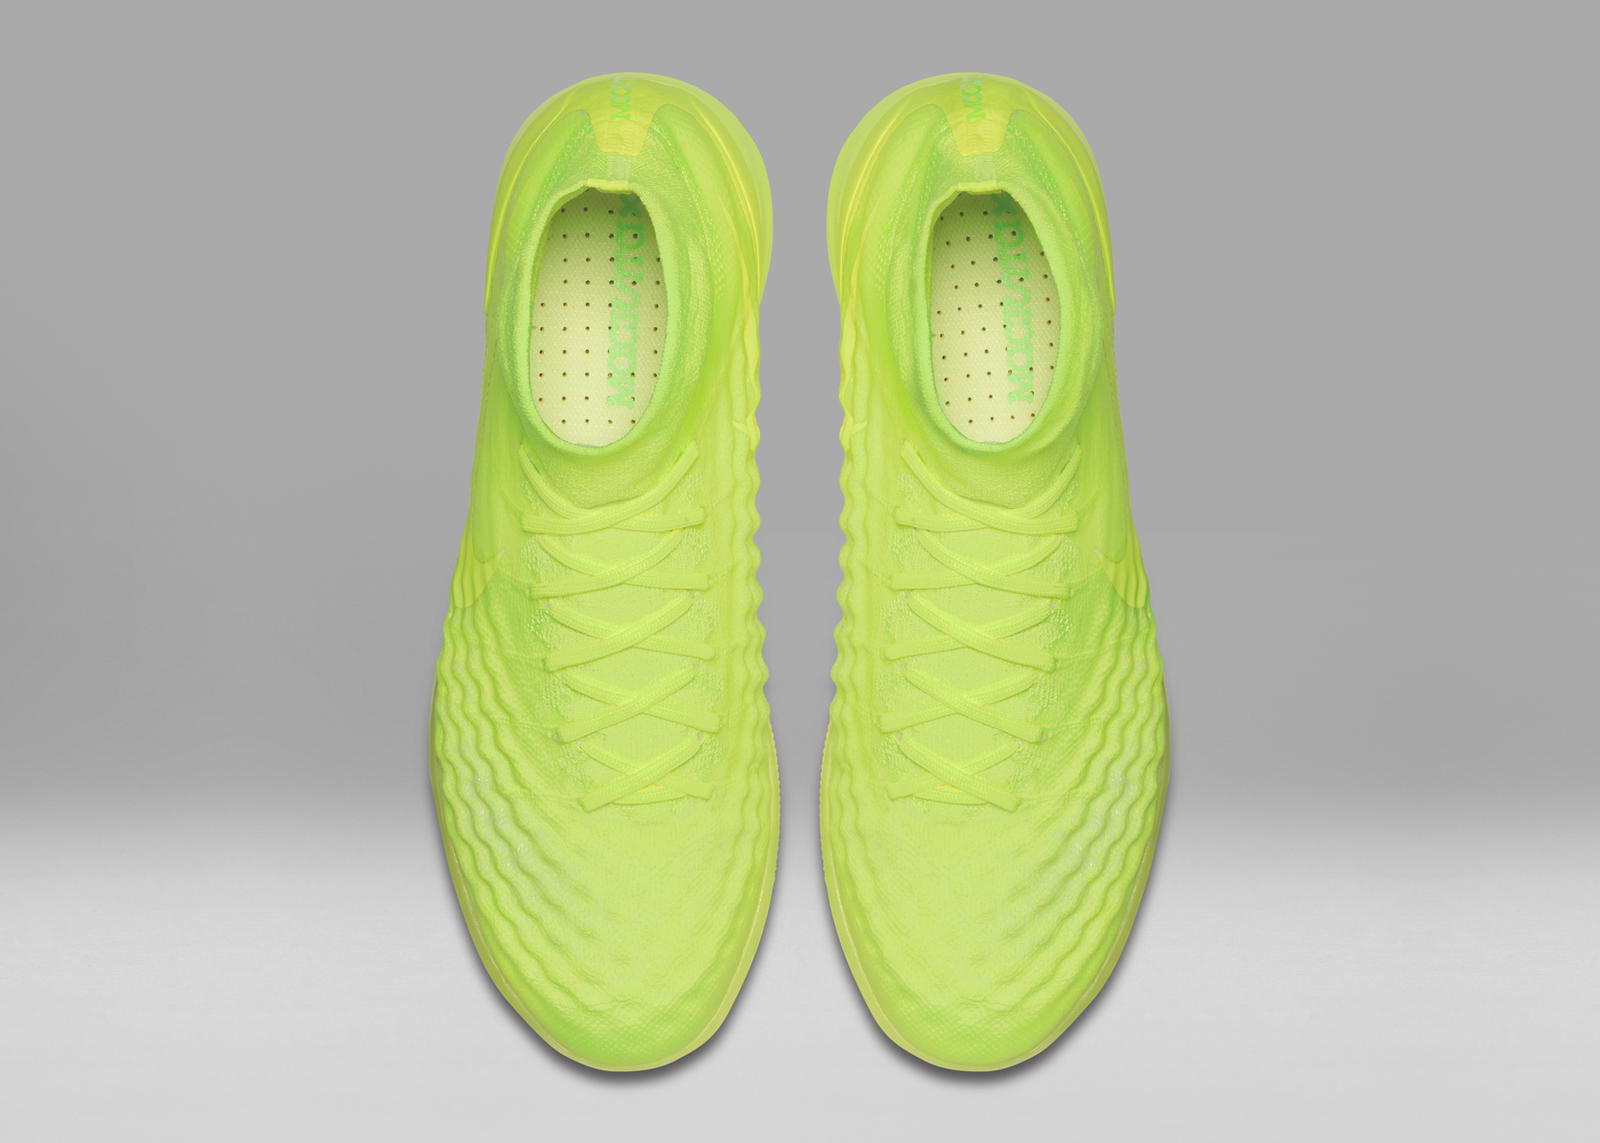 Ho16 Gfb Floodlights Glow Magista X Proximo Ic 03 07 cfbb9896ee